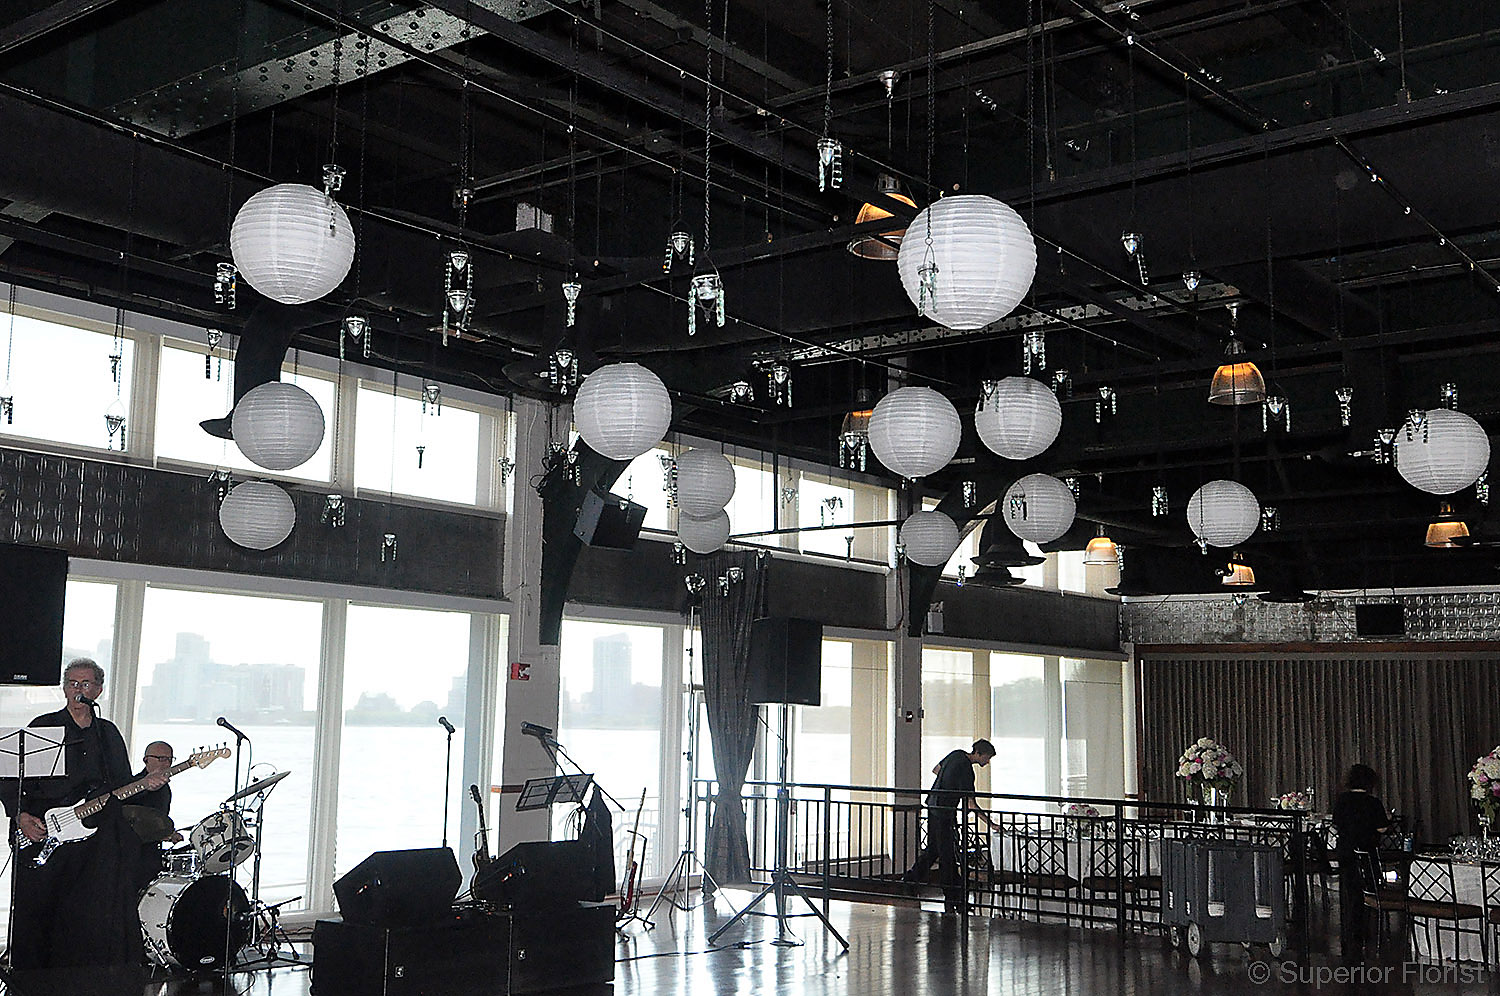 Superior Florist – Wedding Décor:  Suspended votives and lanterns above the dance floor. The Lighthouse at Chelsea Piers, NYC.